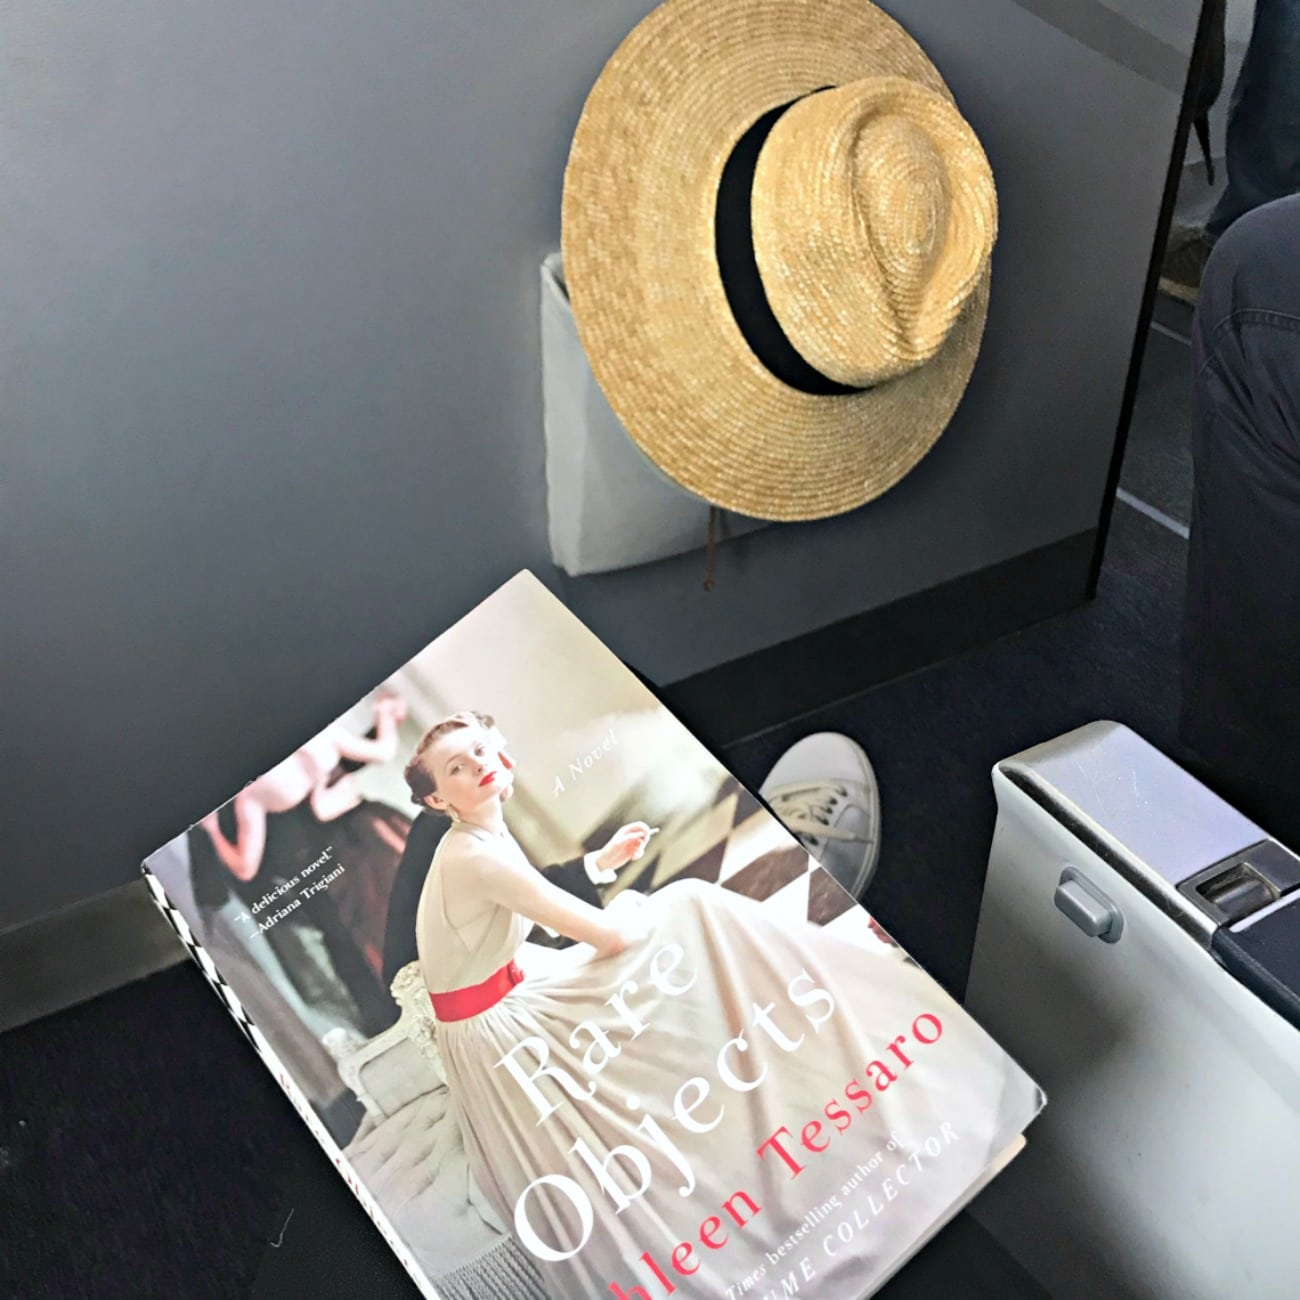 Rare Objects book and straw hat on flight